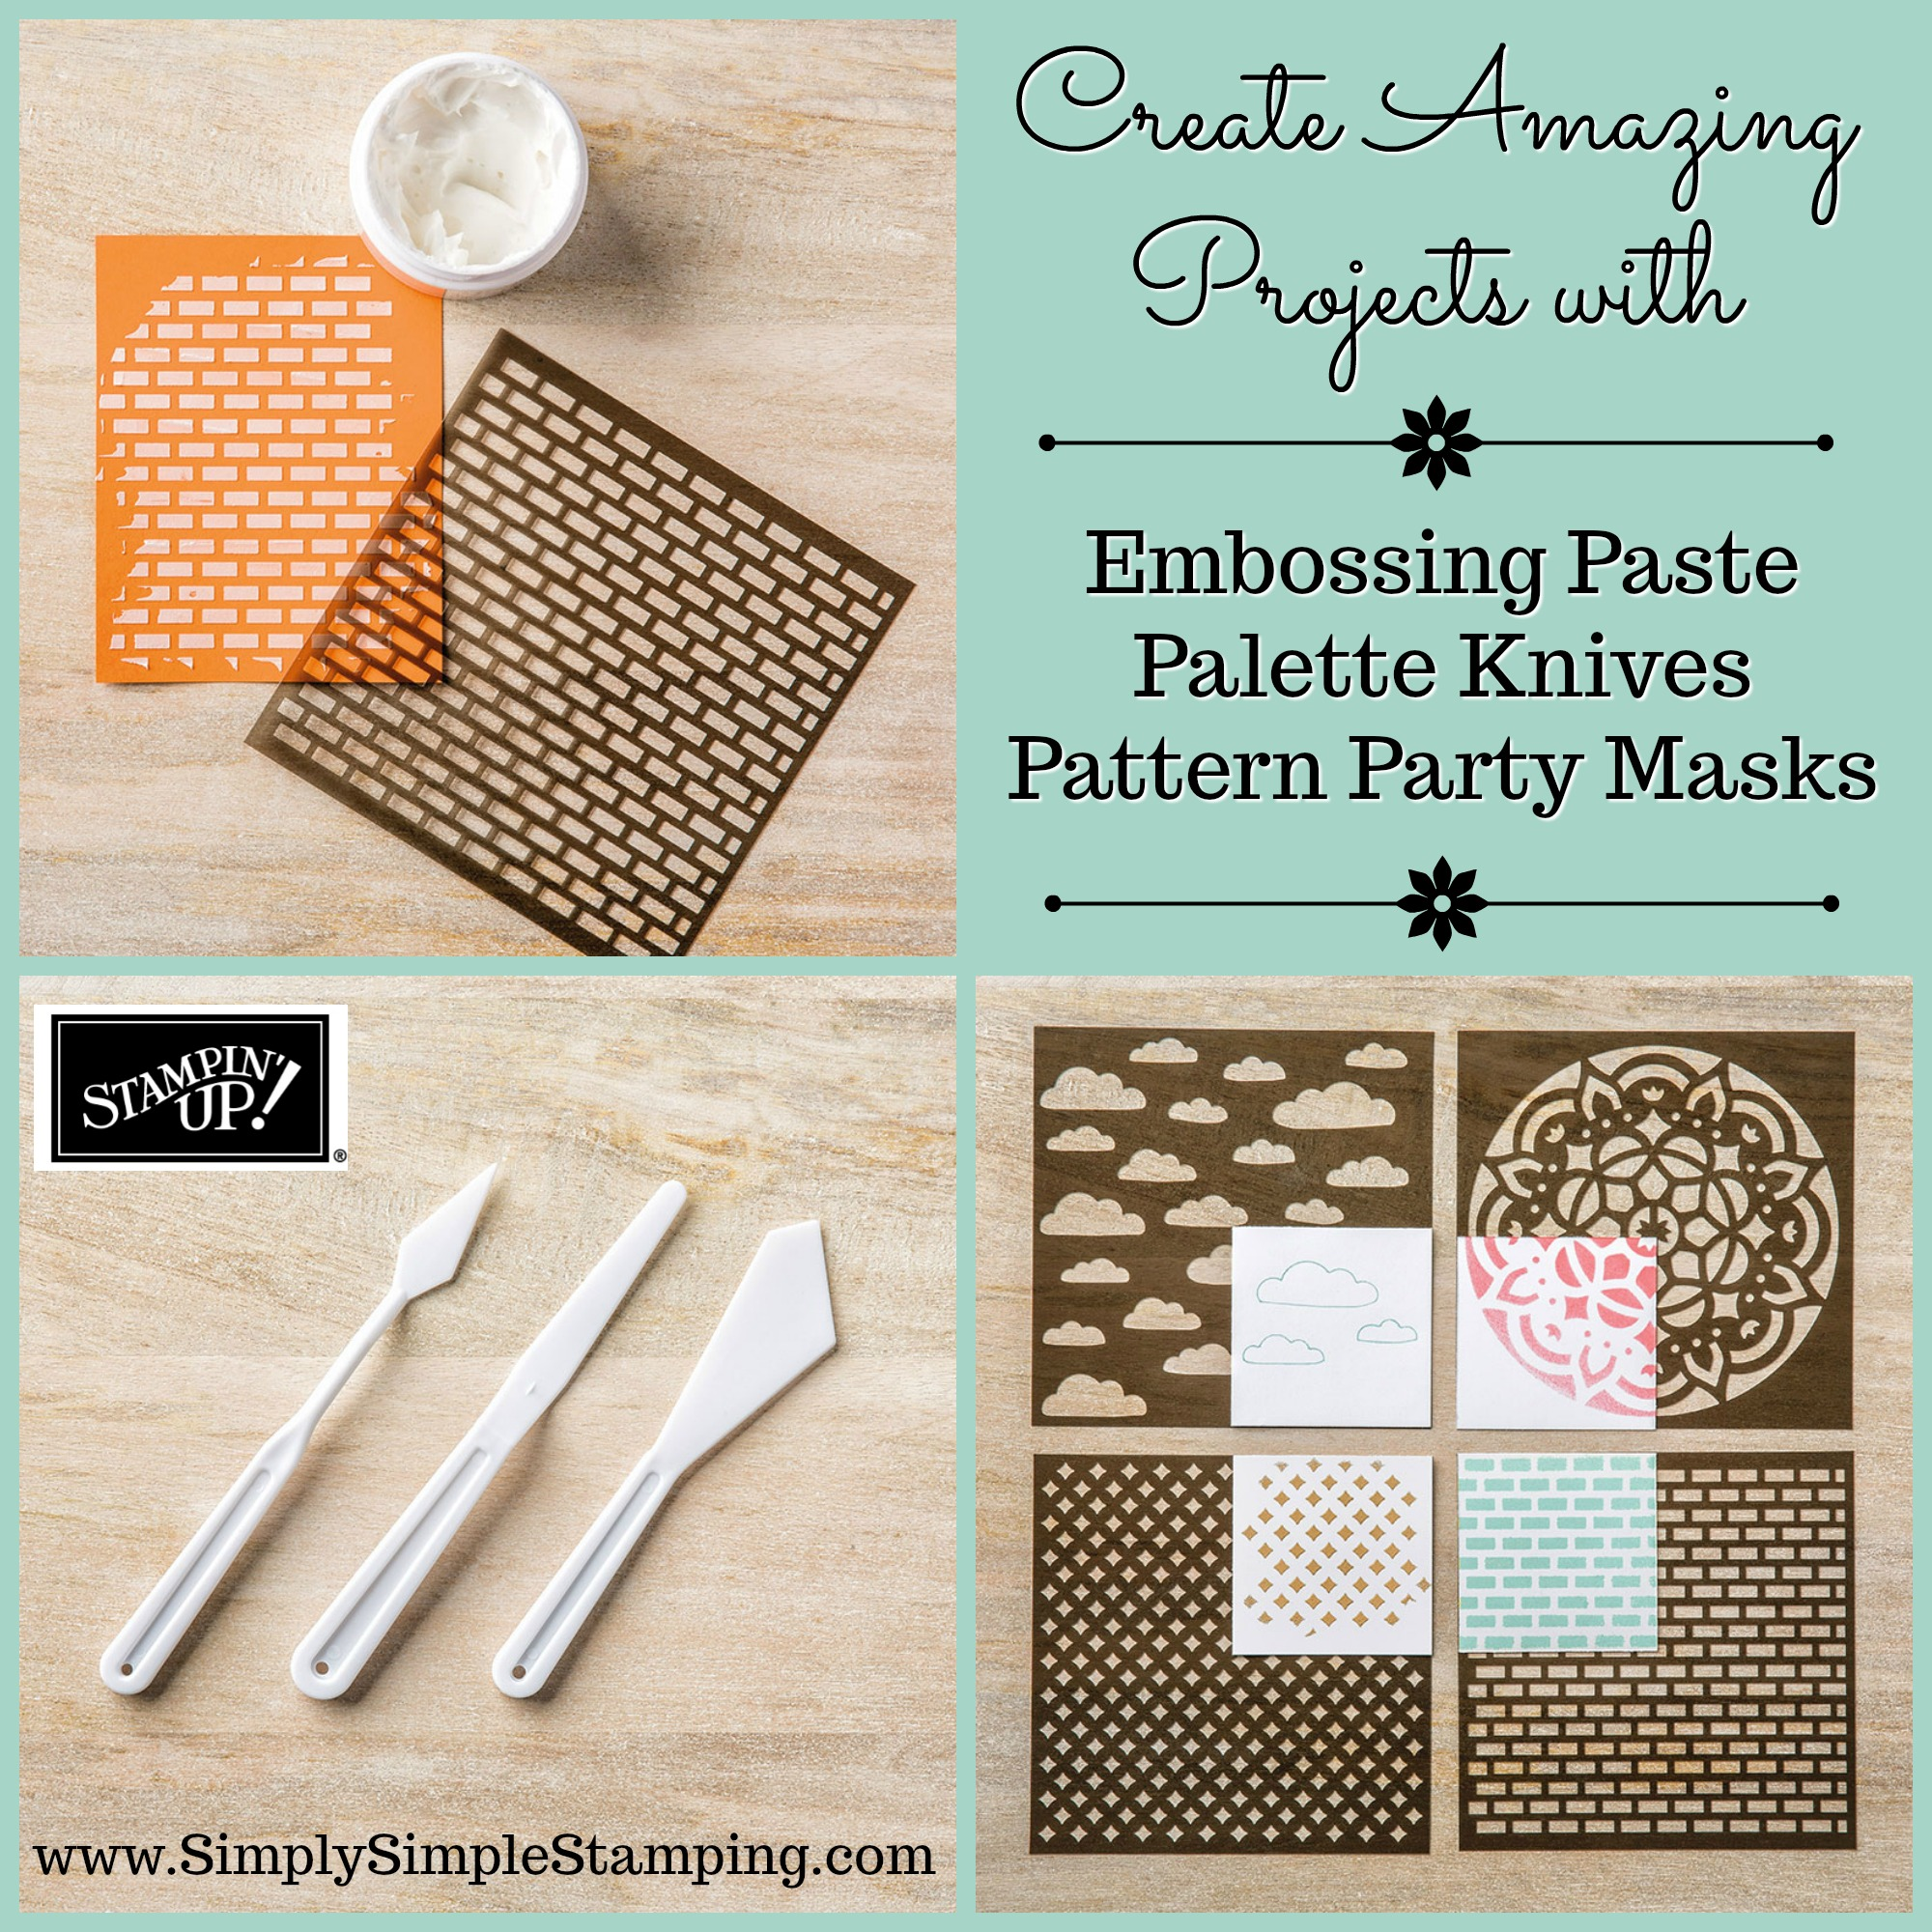 What's New Wednesday - learn about an incredible new product EMBOSSING PASTE from the NEW 2017-2018 Stampin' Up Annual Catalog! www.SimplySimpleStamping.com - check out blog post August 2, 2017